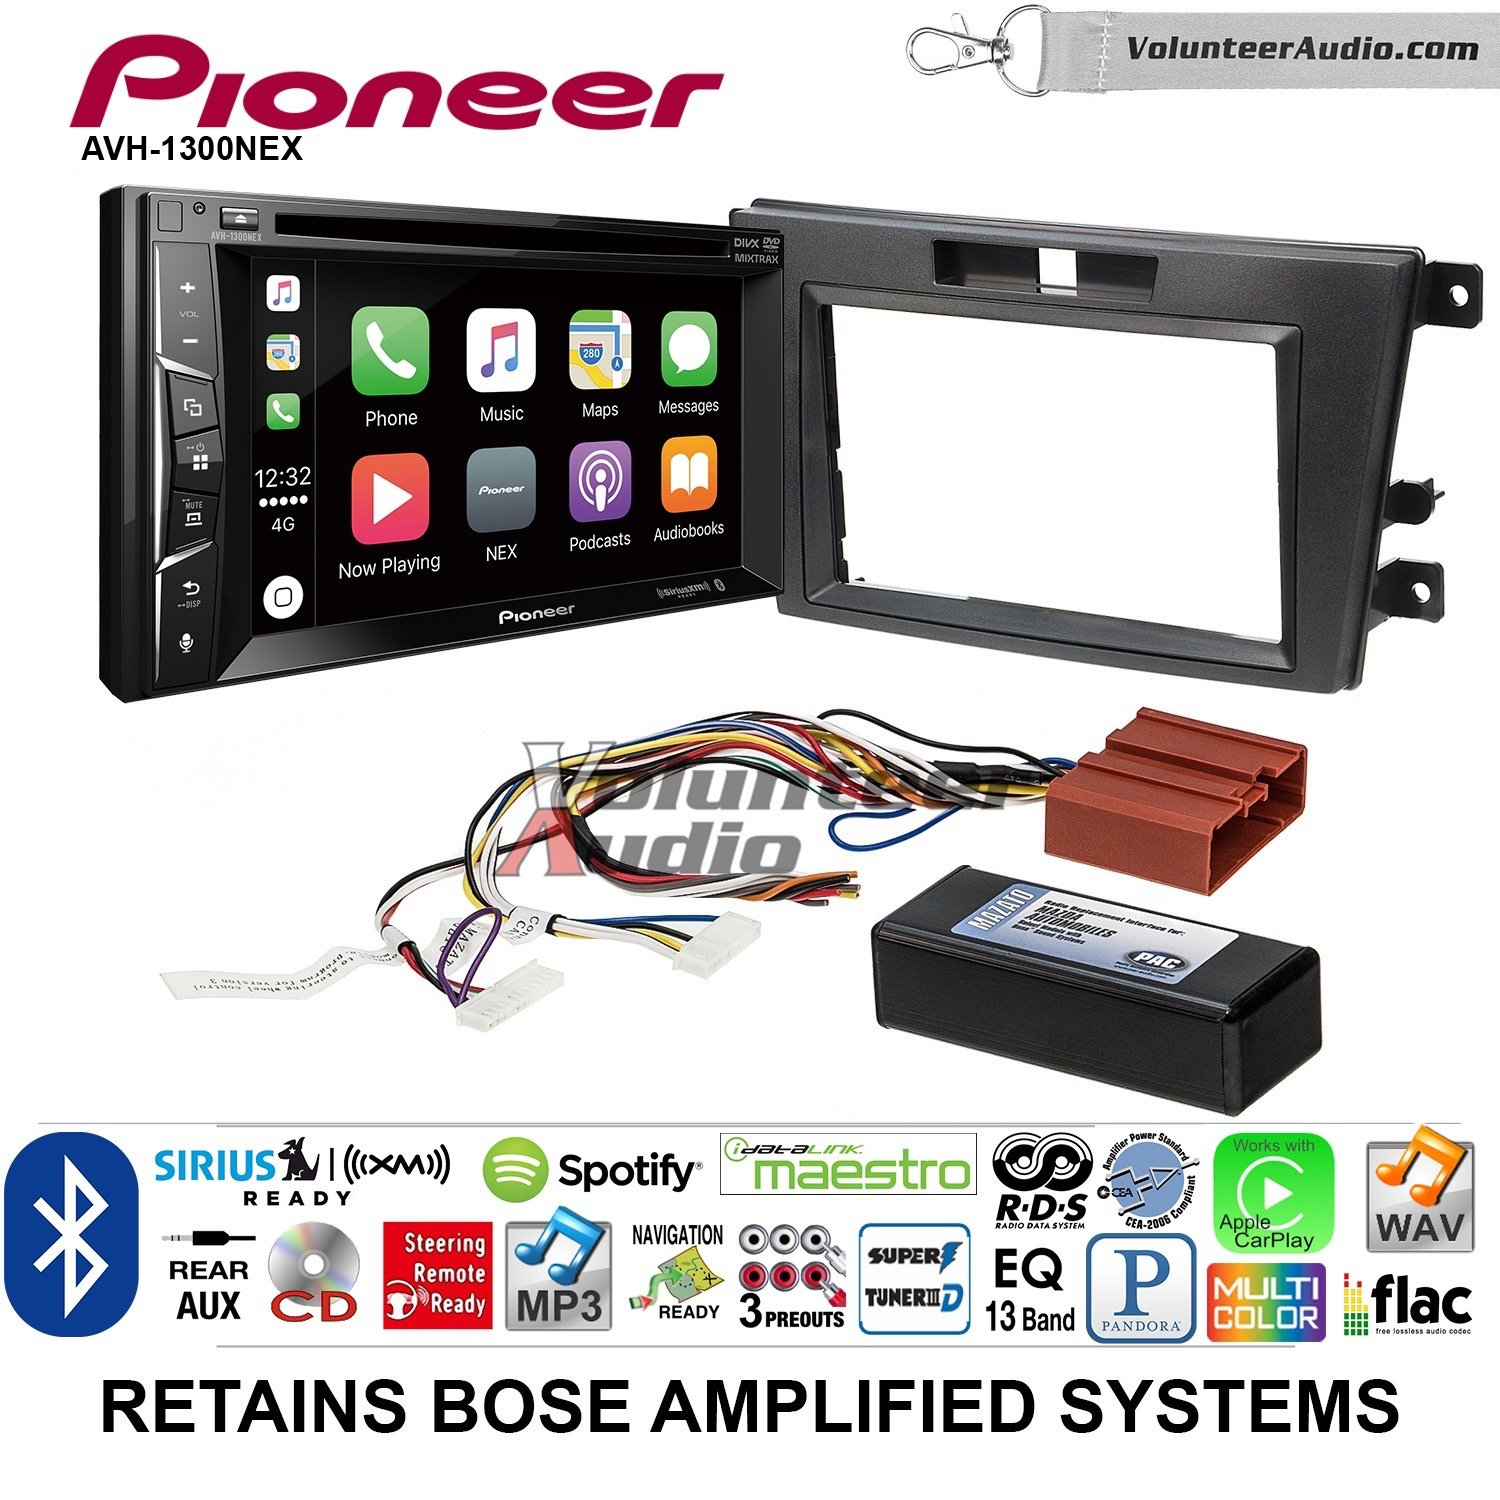 Volunteer Audio Pioneer AVH-1300NEX Double Din Radio Install Kit with Apple Carplay Bluetooth USB/AUX Fits 2007-2009 Mazda CX-7 (With Bose)